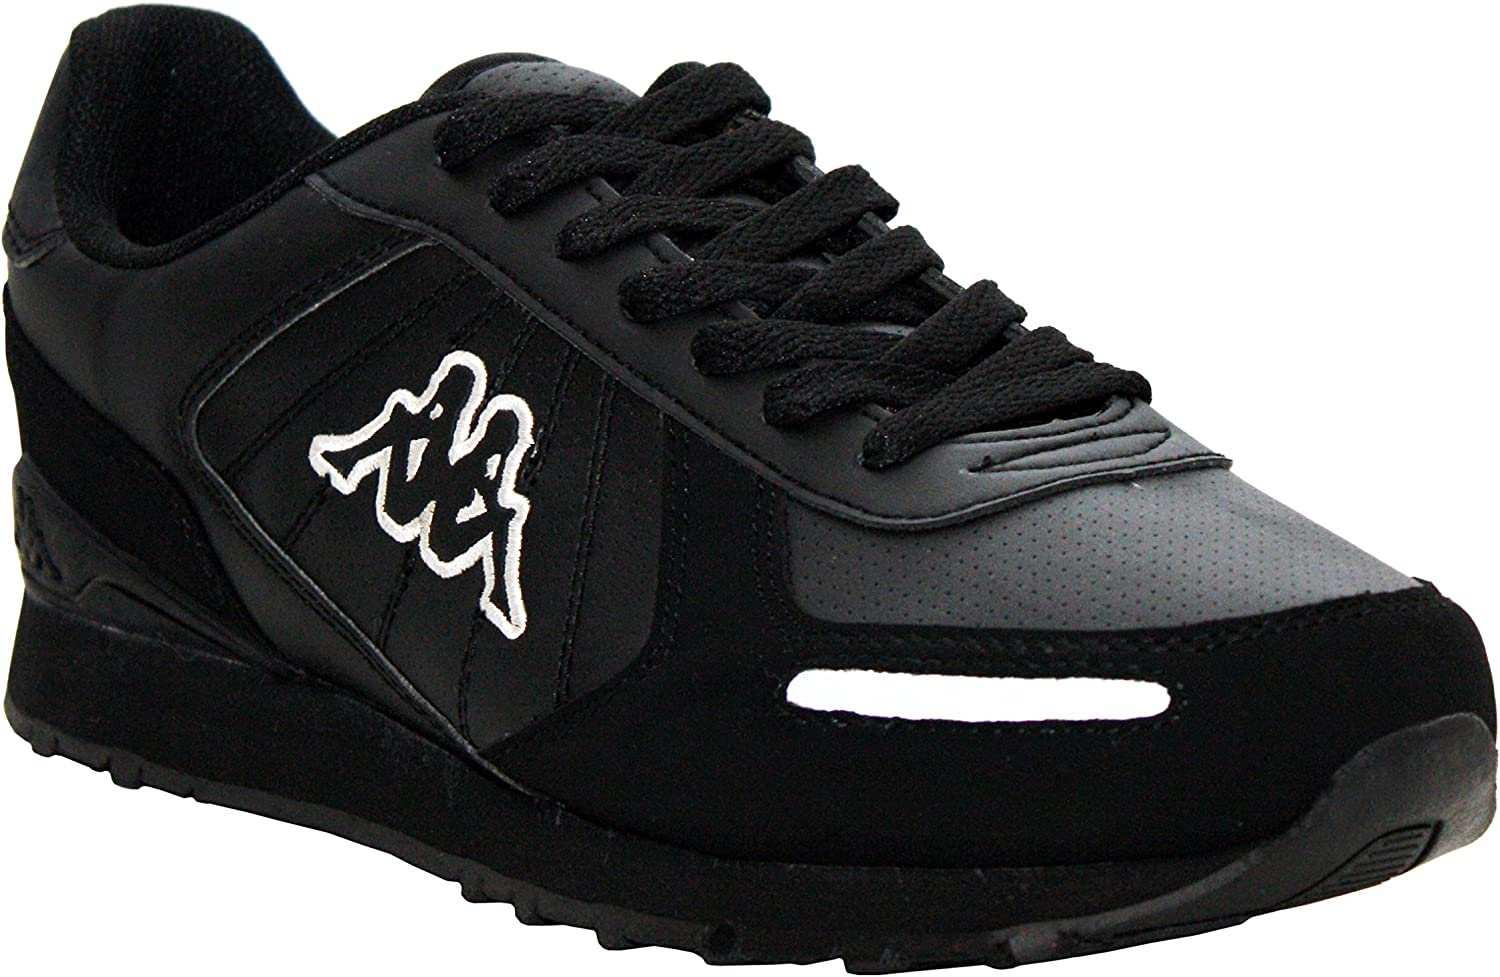 UK MENS PUMPS TRAINERS LACE UP RUNNING CASUAL SPORTS GYM SHOES SNEAKERS SIZE NEW